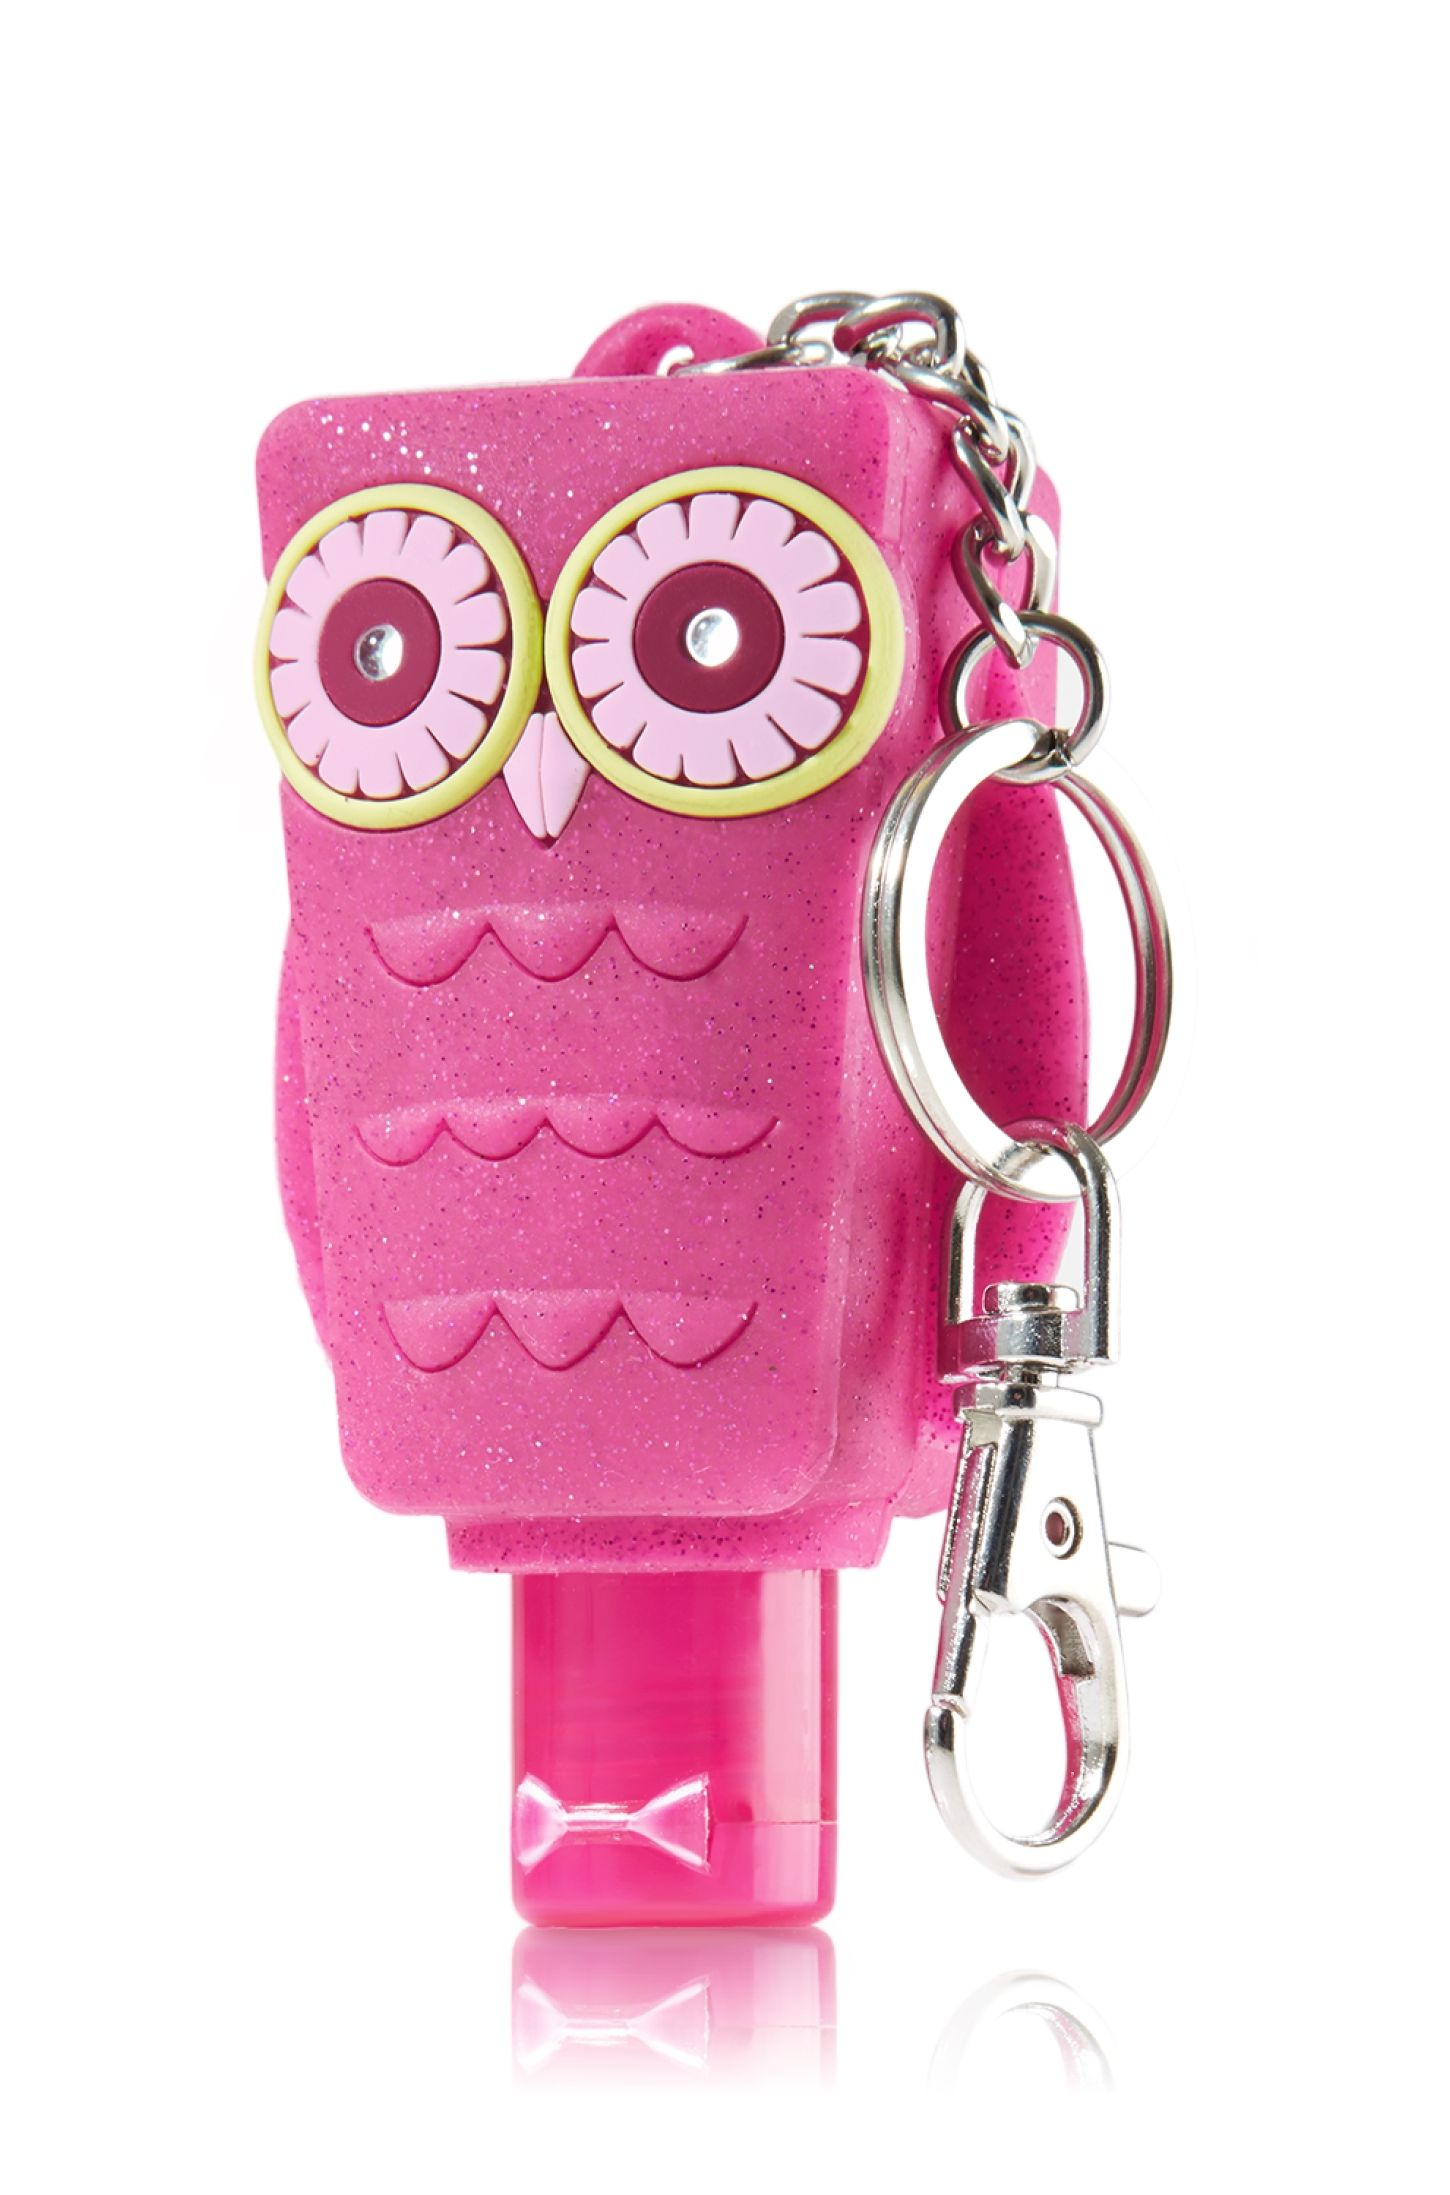 Light Up Pink Owl Keychain Pocketbac Holder Bath Body Works